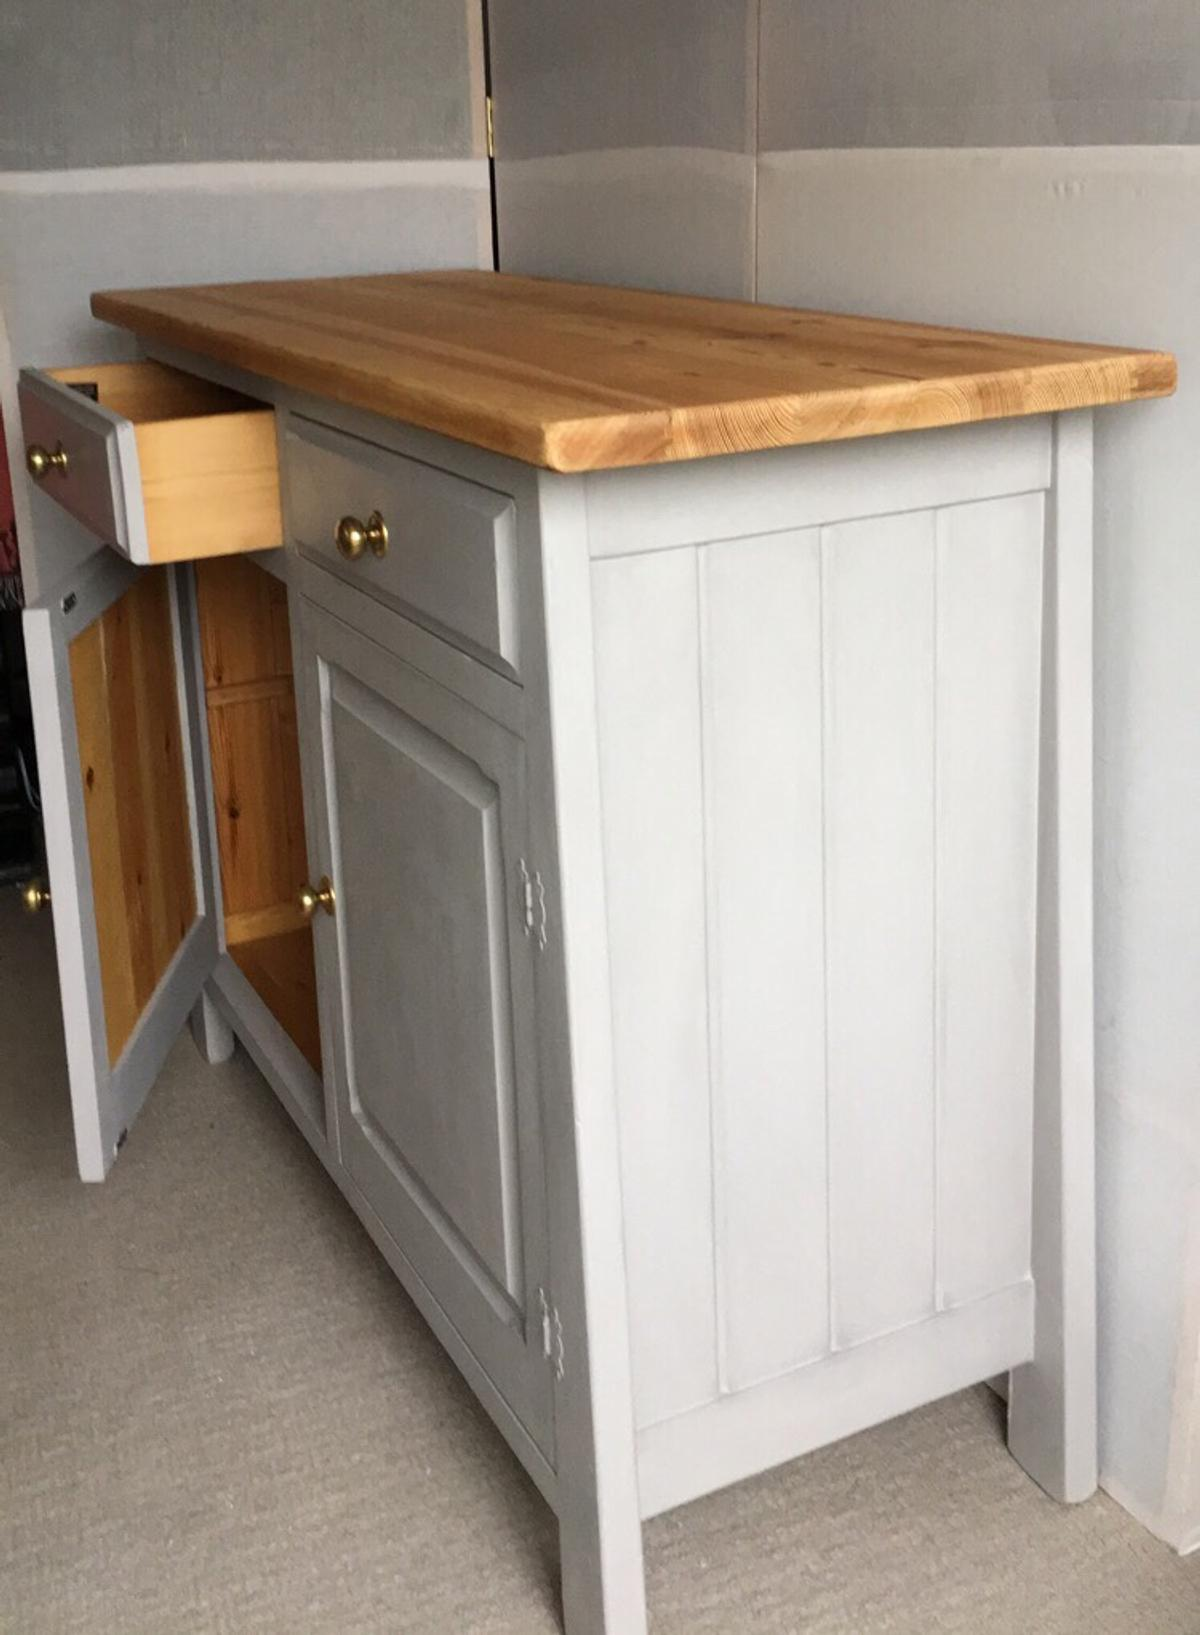 Sideboard Shabby Chic Chunky Rustic Sideboard Shabby Chic In Me8 Gillingham For 126 00